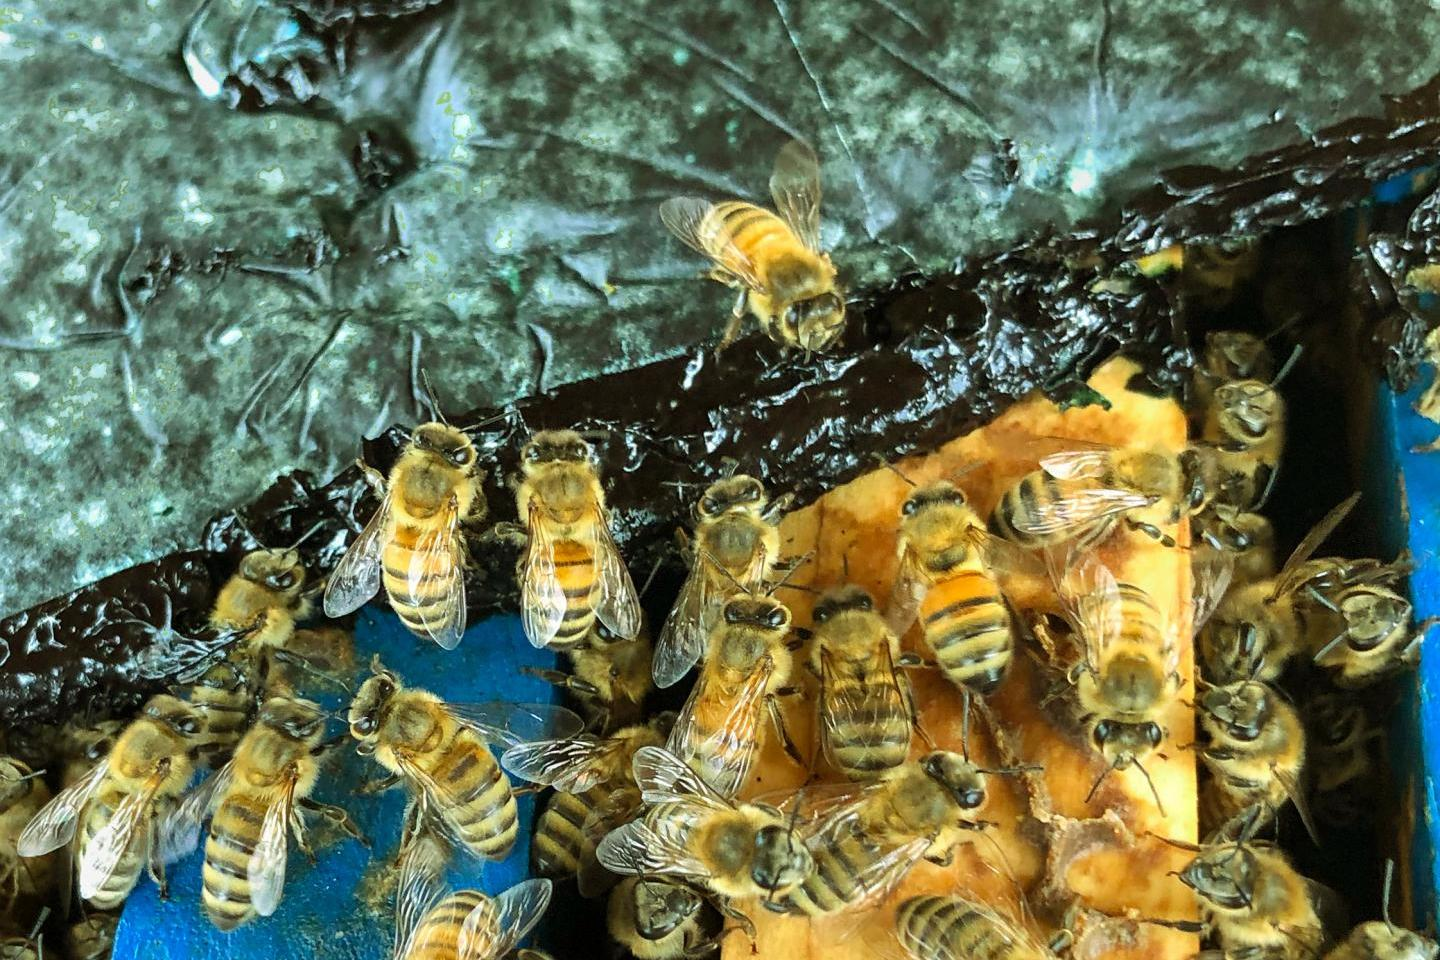 Honeybees sample dried spirulina (Arthrospira platensis) – its nutritional profile is said to closely resemble that of pollen